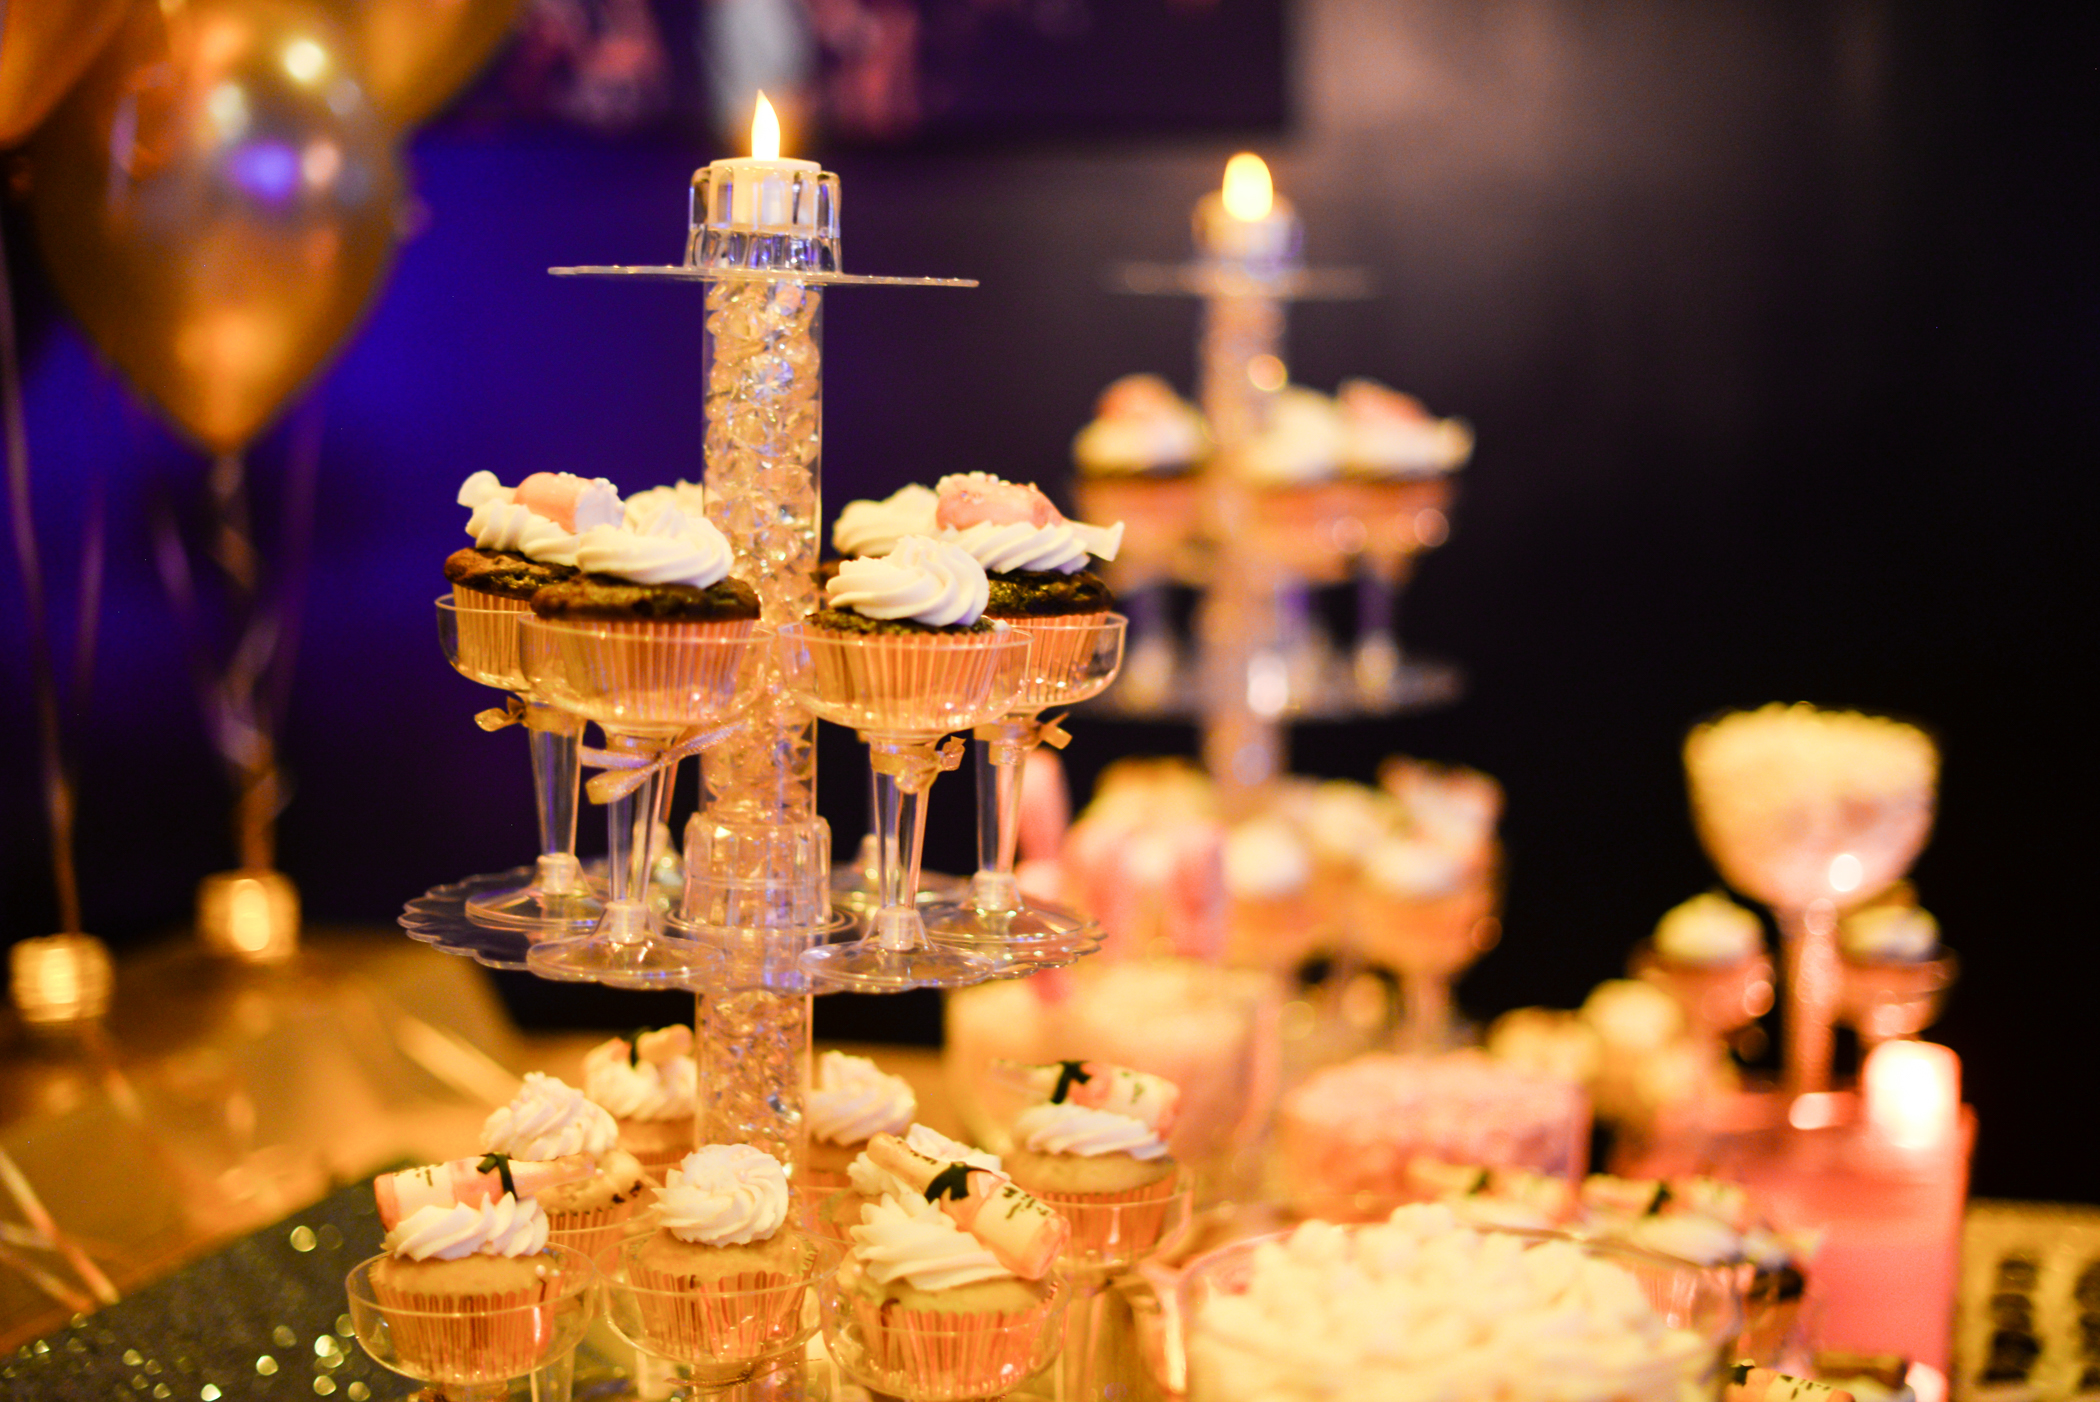 Champagne Party Details Small-34.JPG